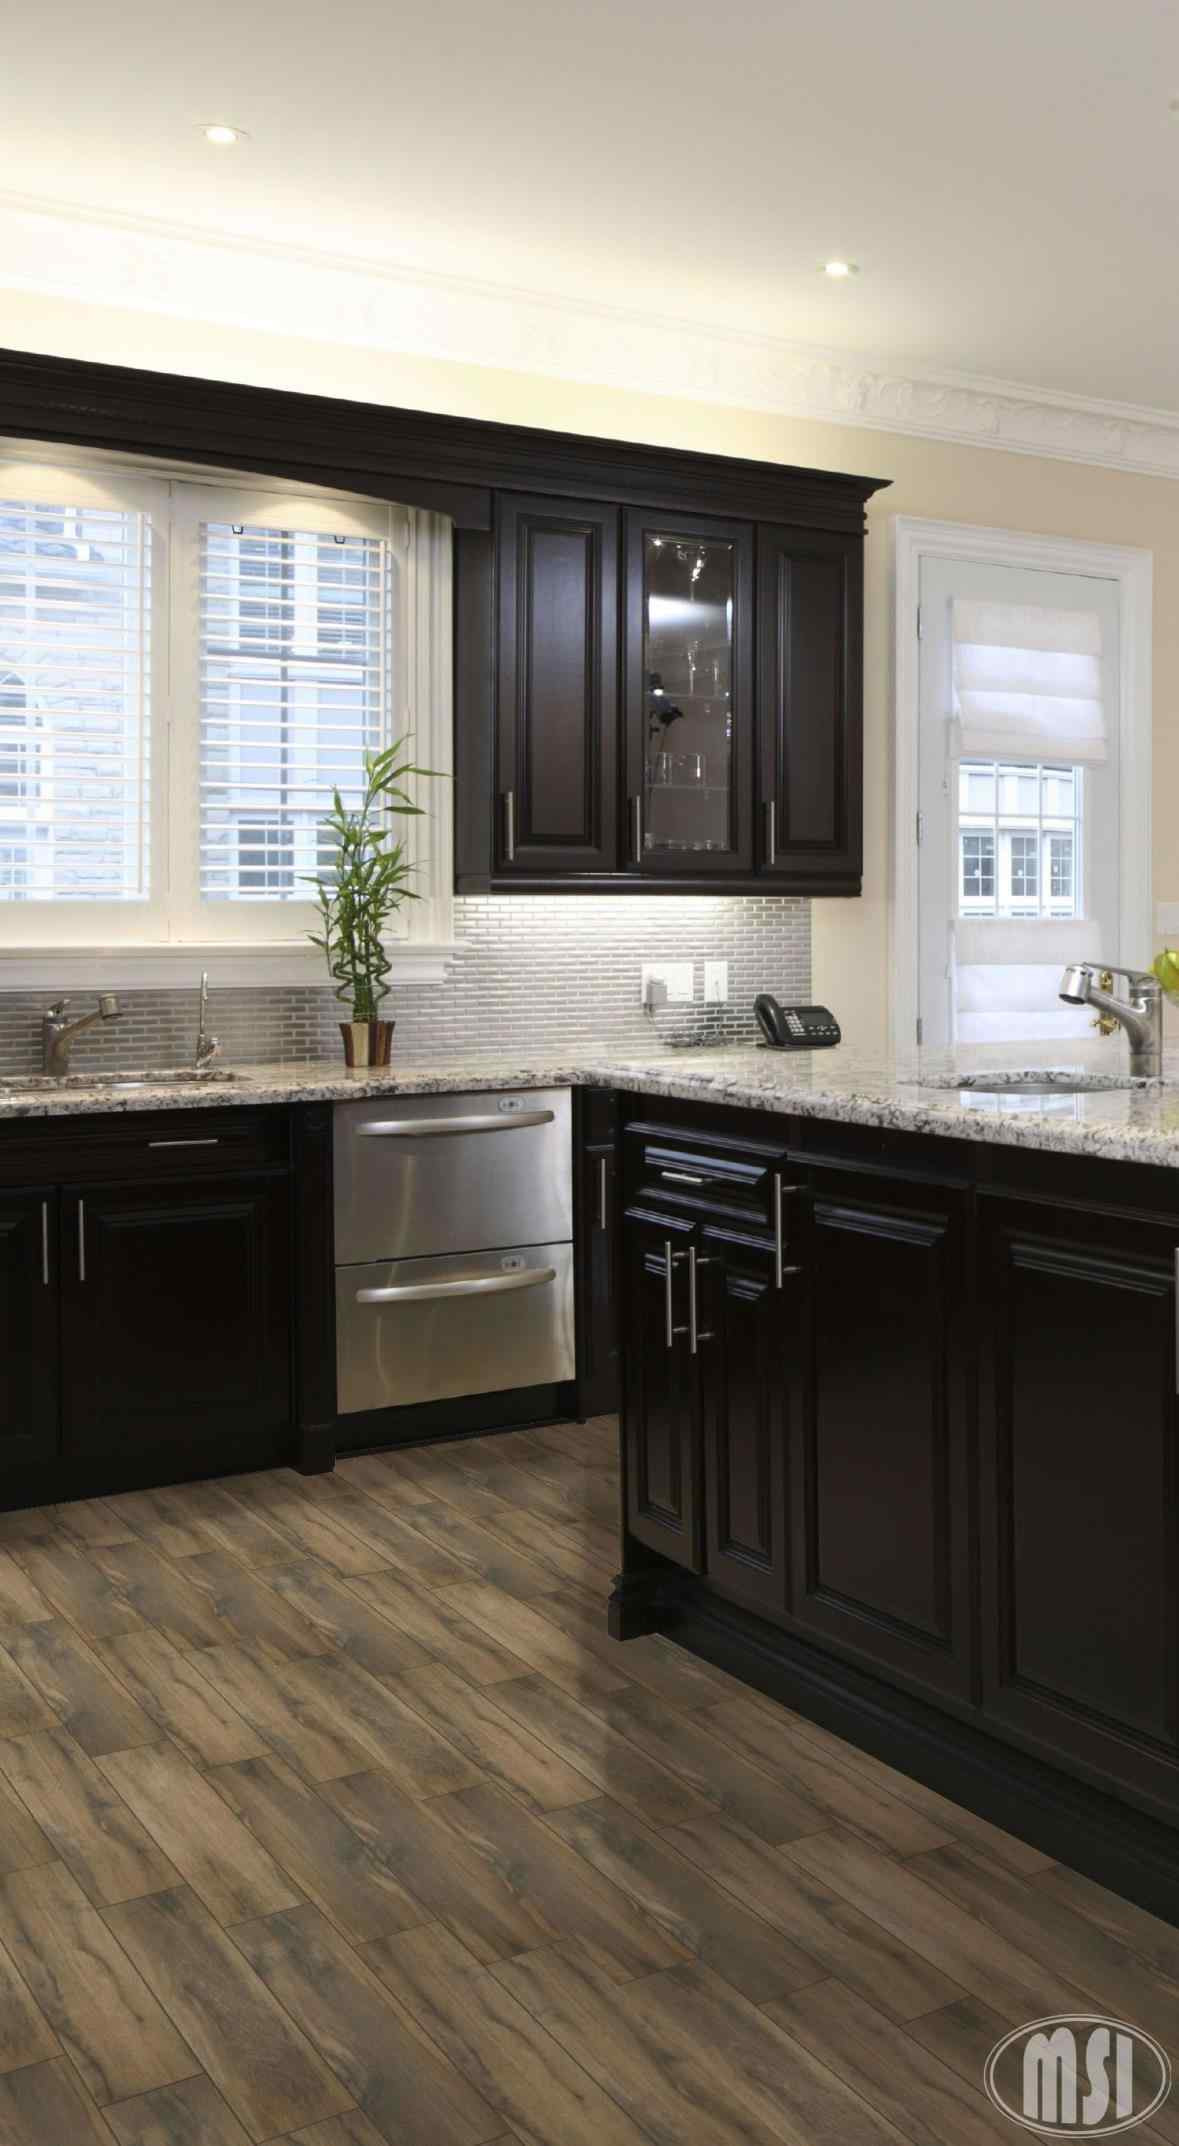 30 Trendy Hardwood Floors With Dark Cabinets Unique Flooring Ideas